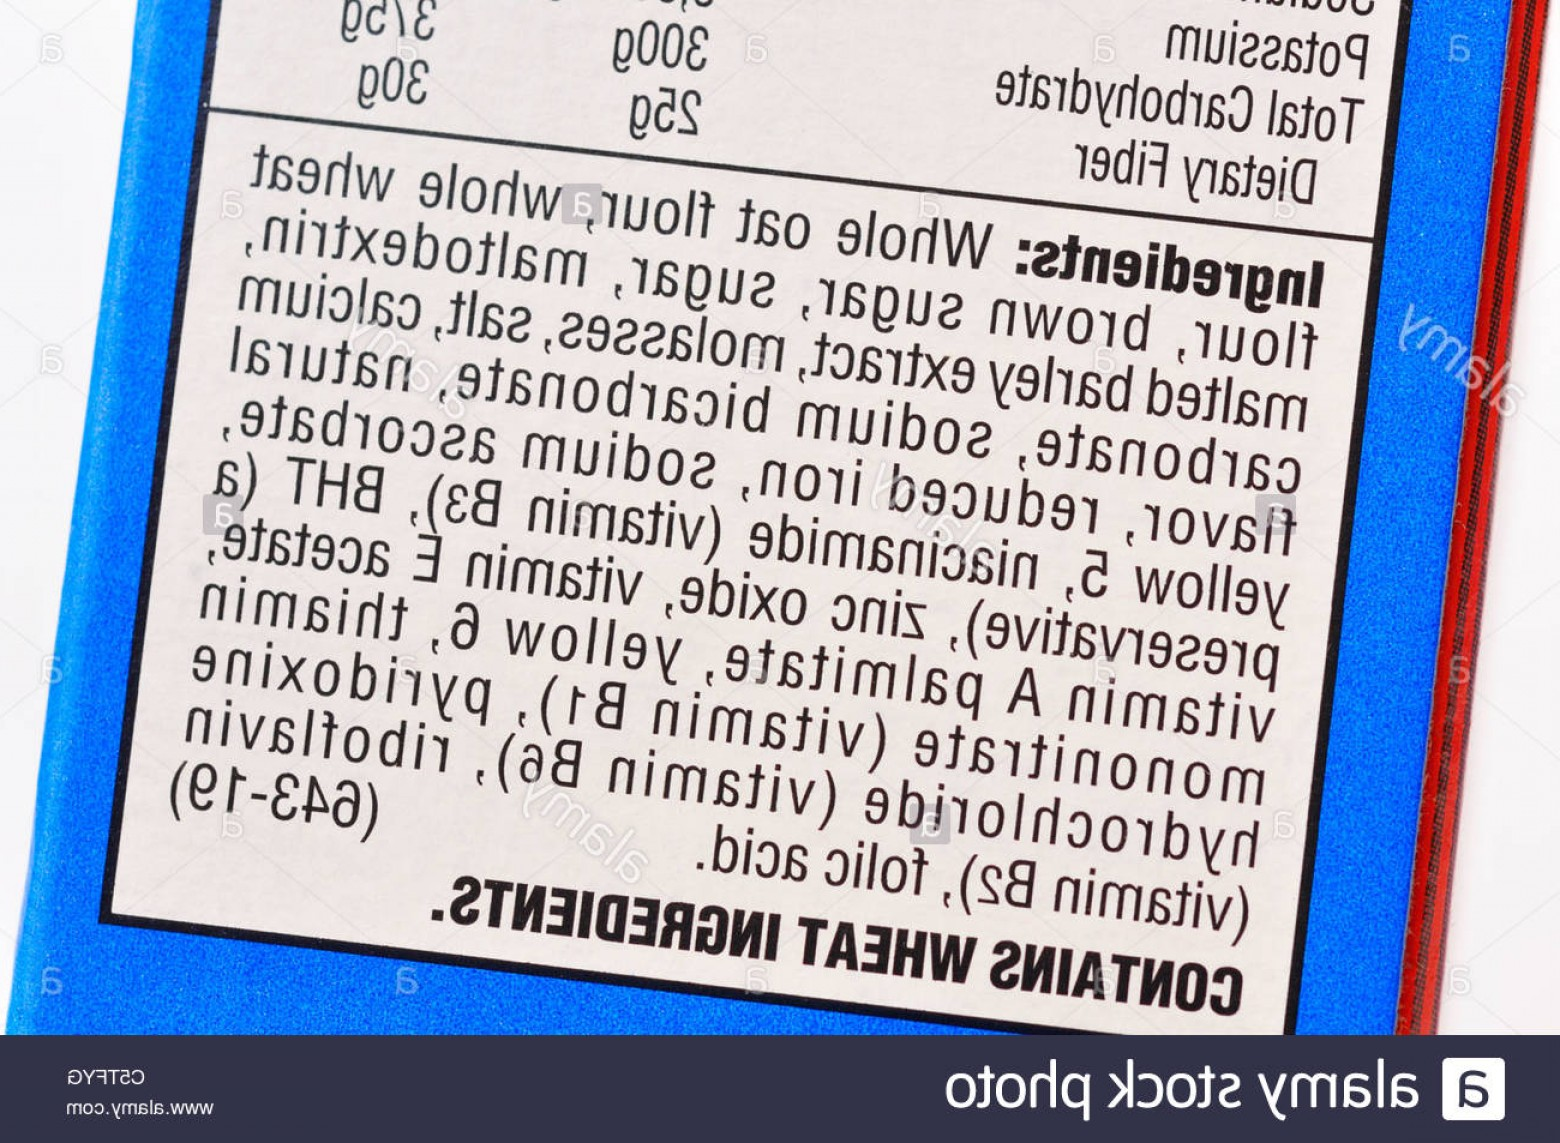 Nutrition Label Kellogg's Vector: Stock Photo Ingredients List On Cereal Box